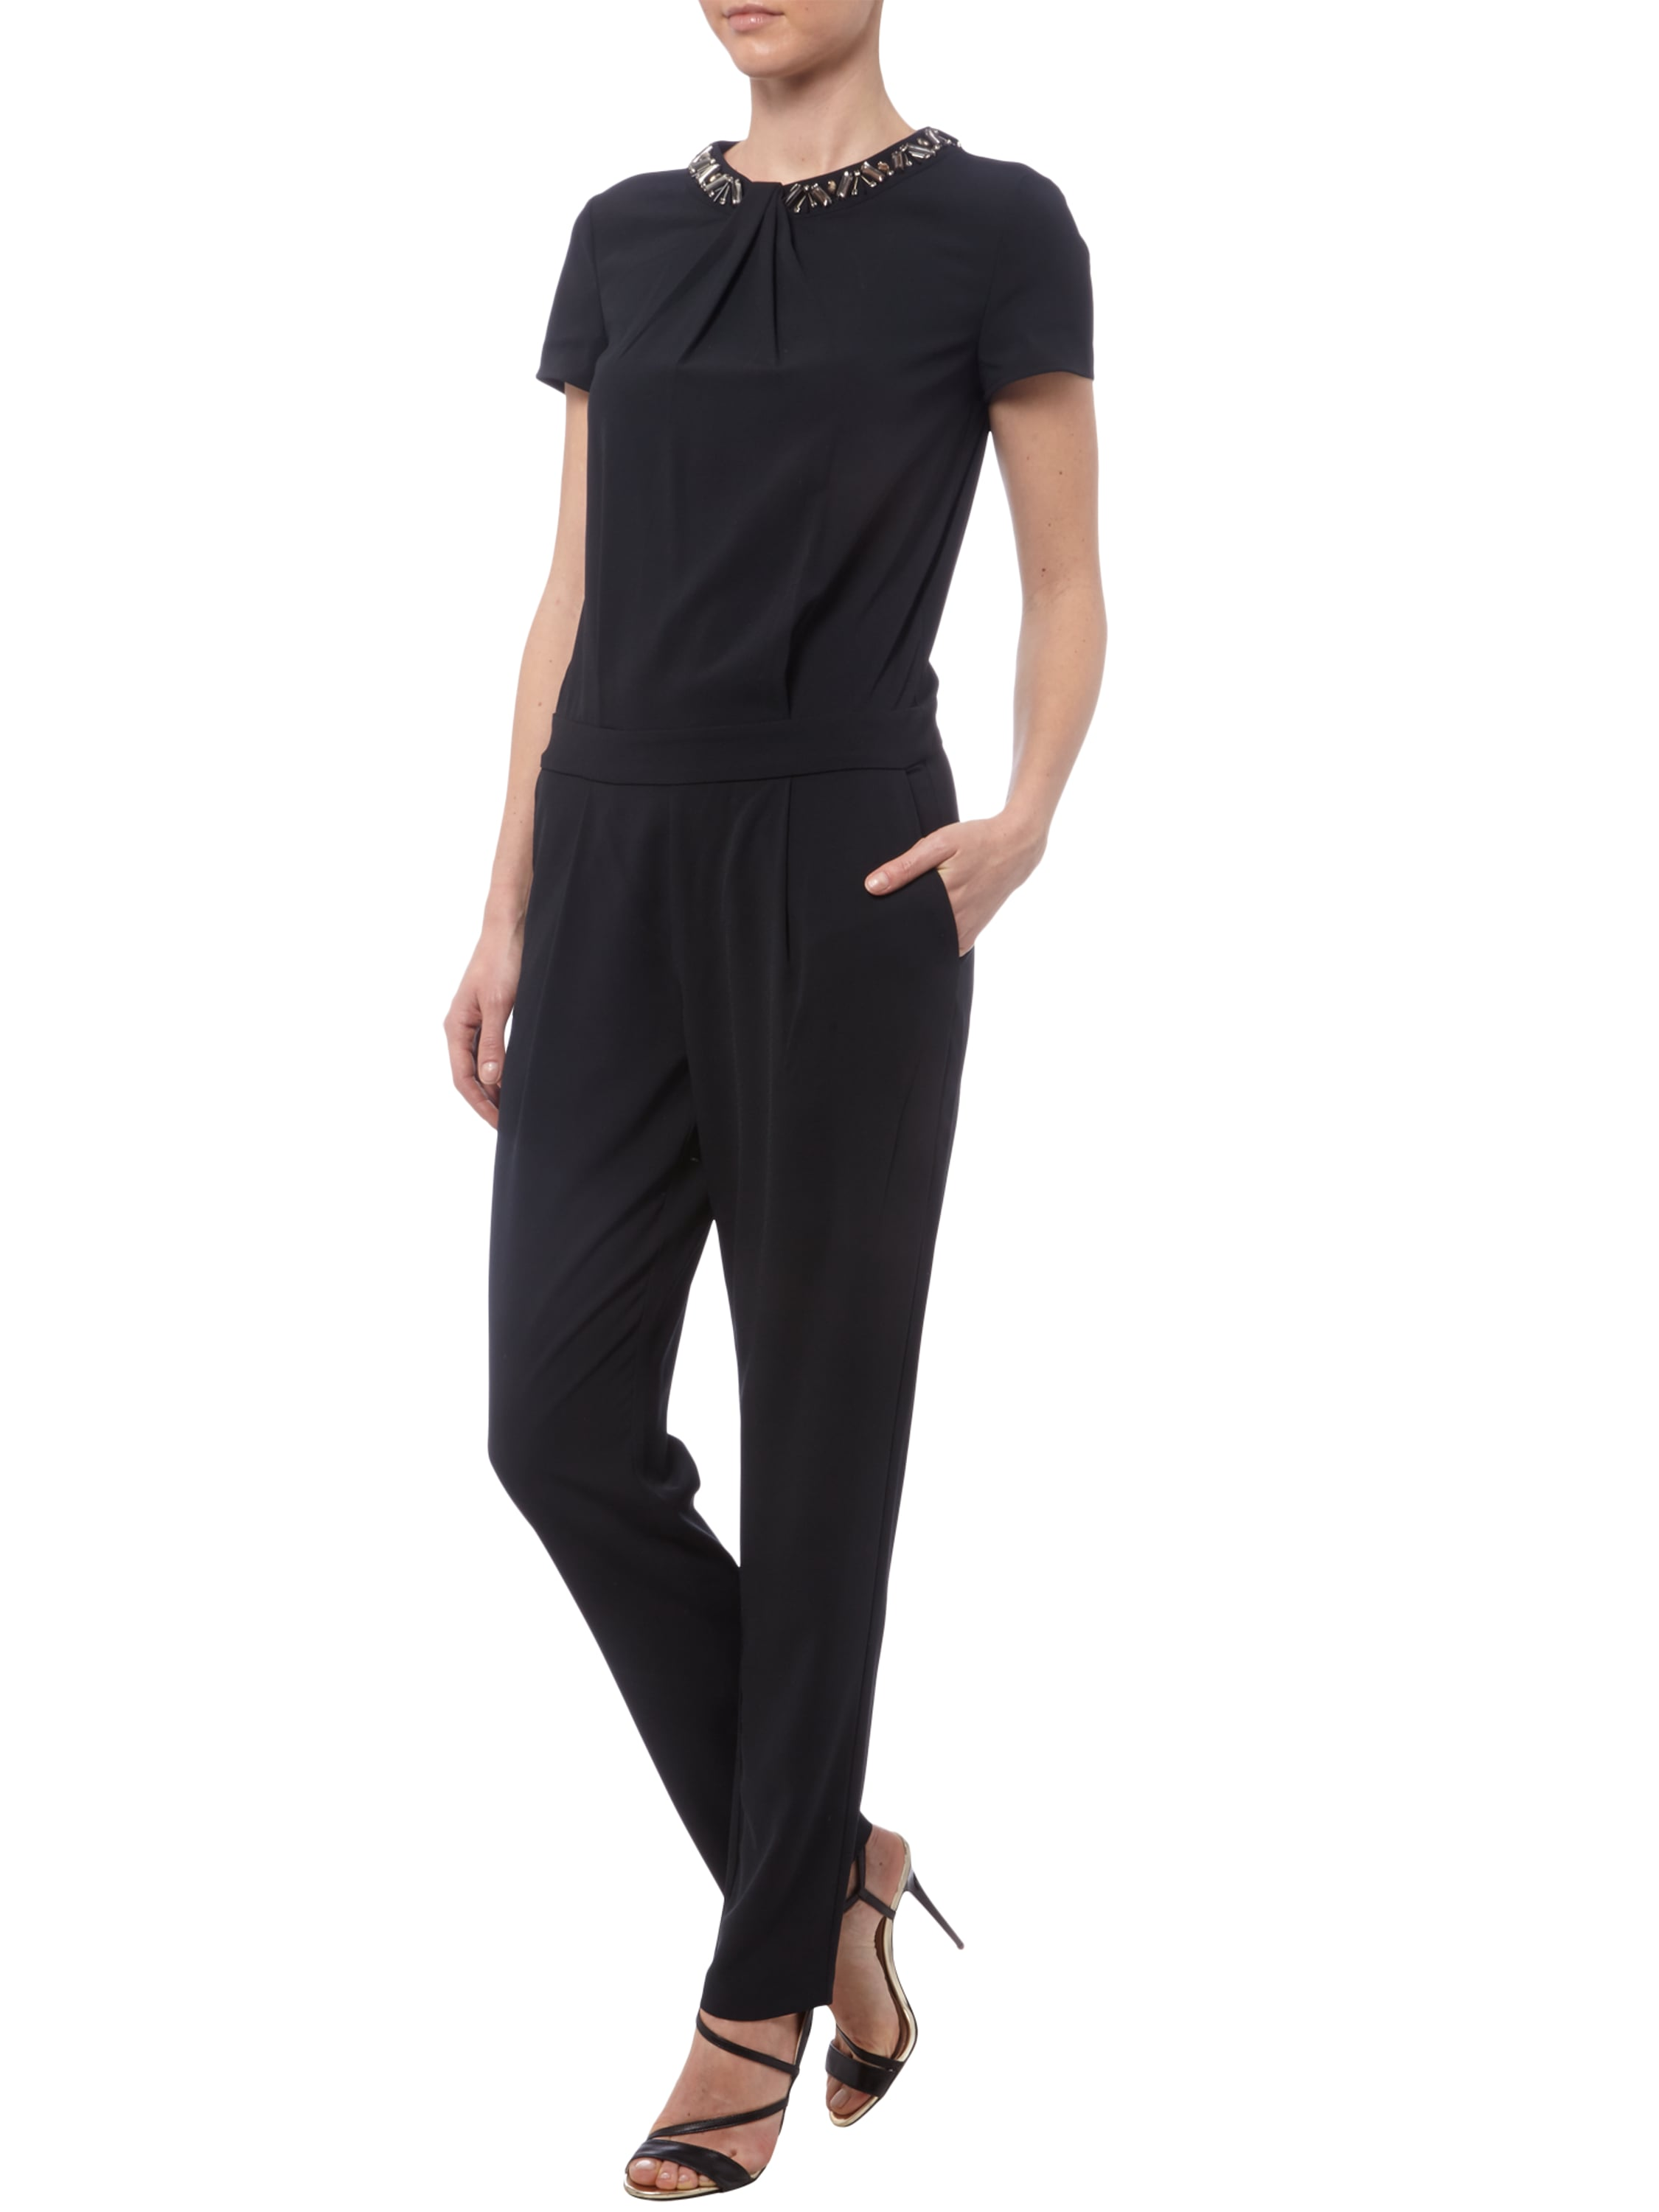 esprit collection jumpsuit mit ziersteinbesatz und drapierung in grau schwarz online kaufen. Black Bedroom Furniture Sets. Home Design Ideas